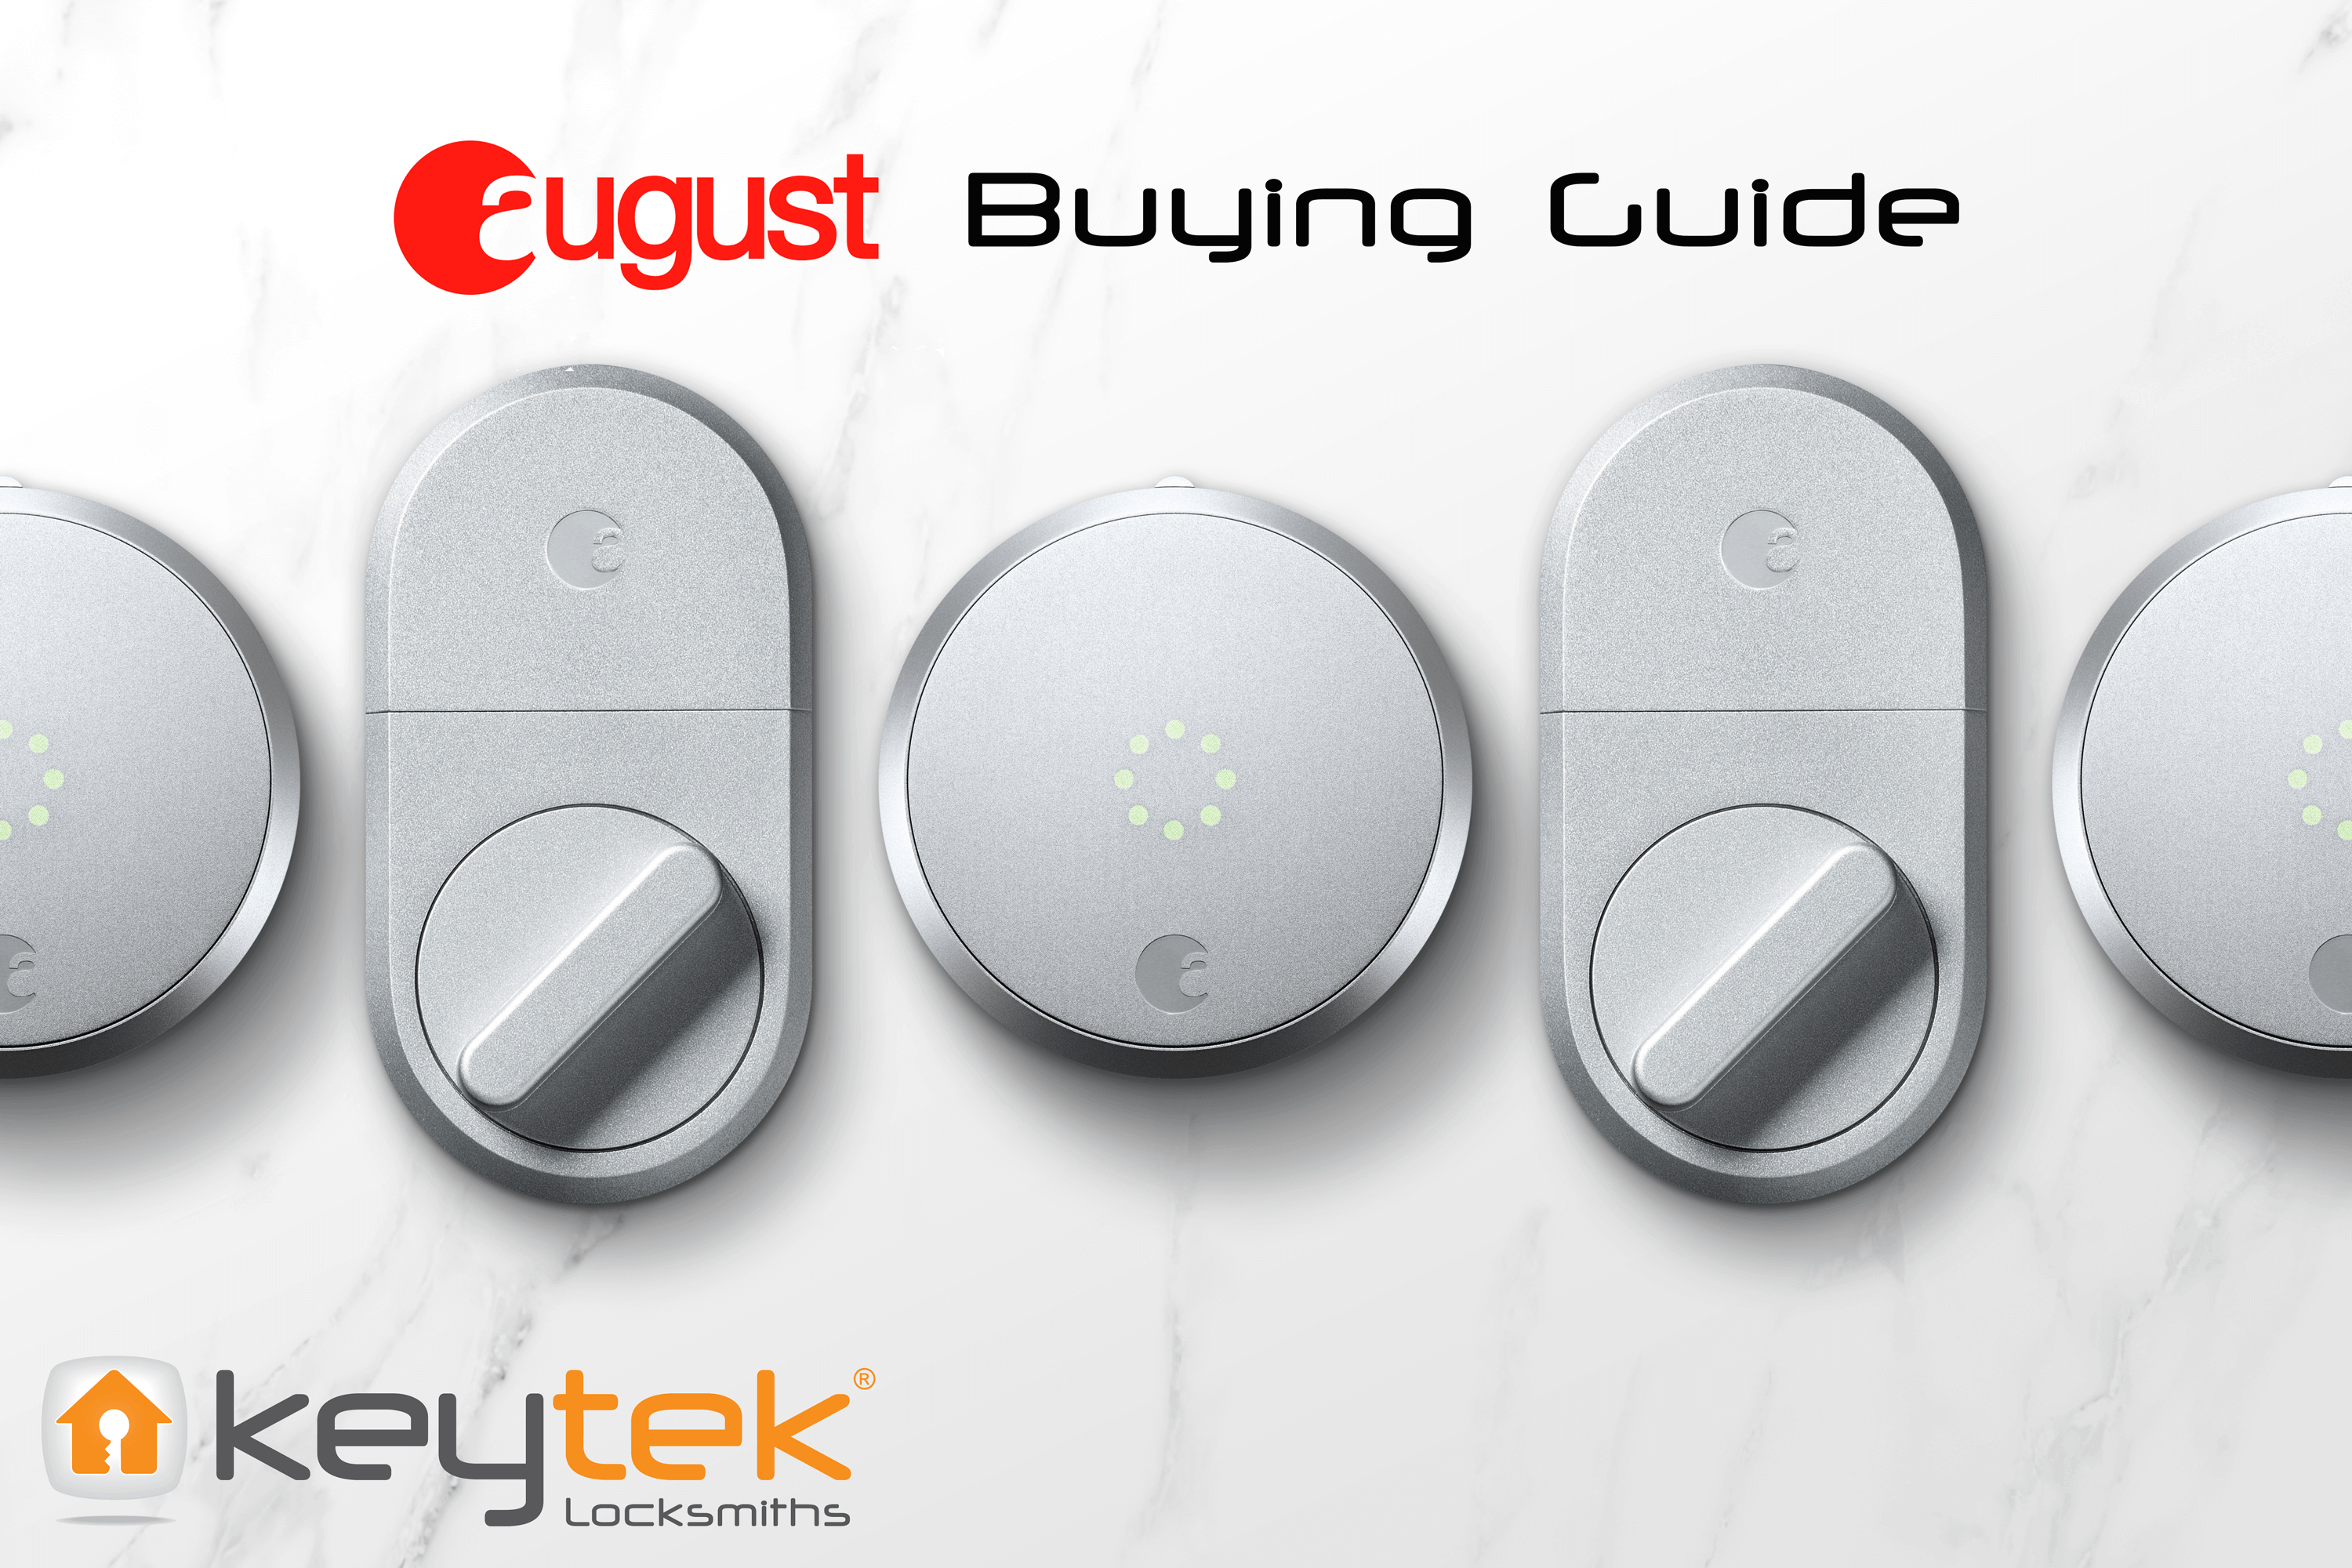 August Smart Lock Buying Guide